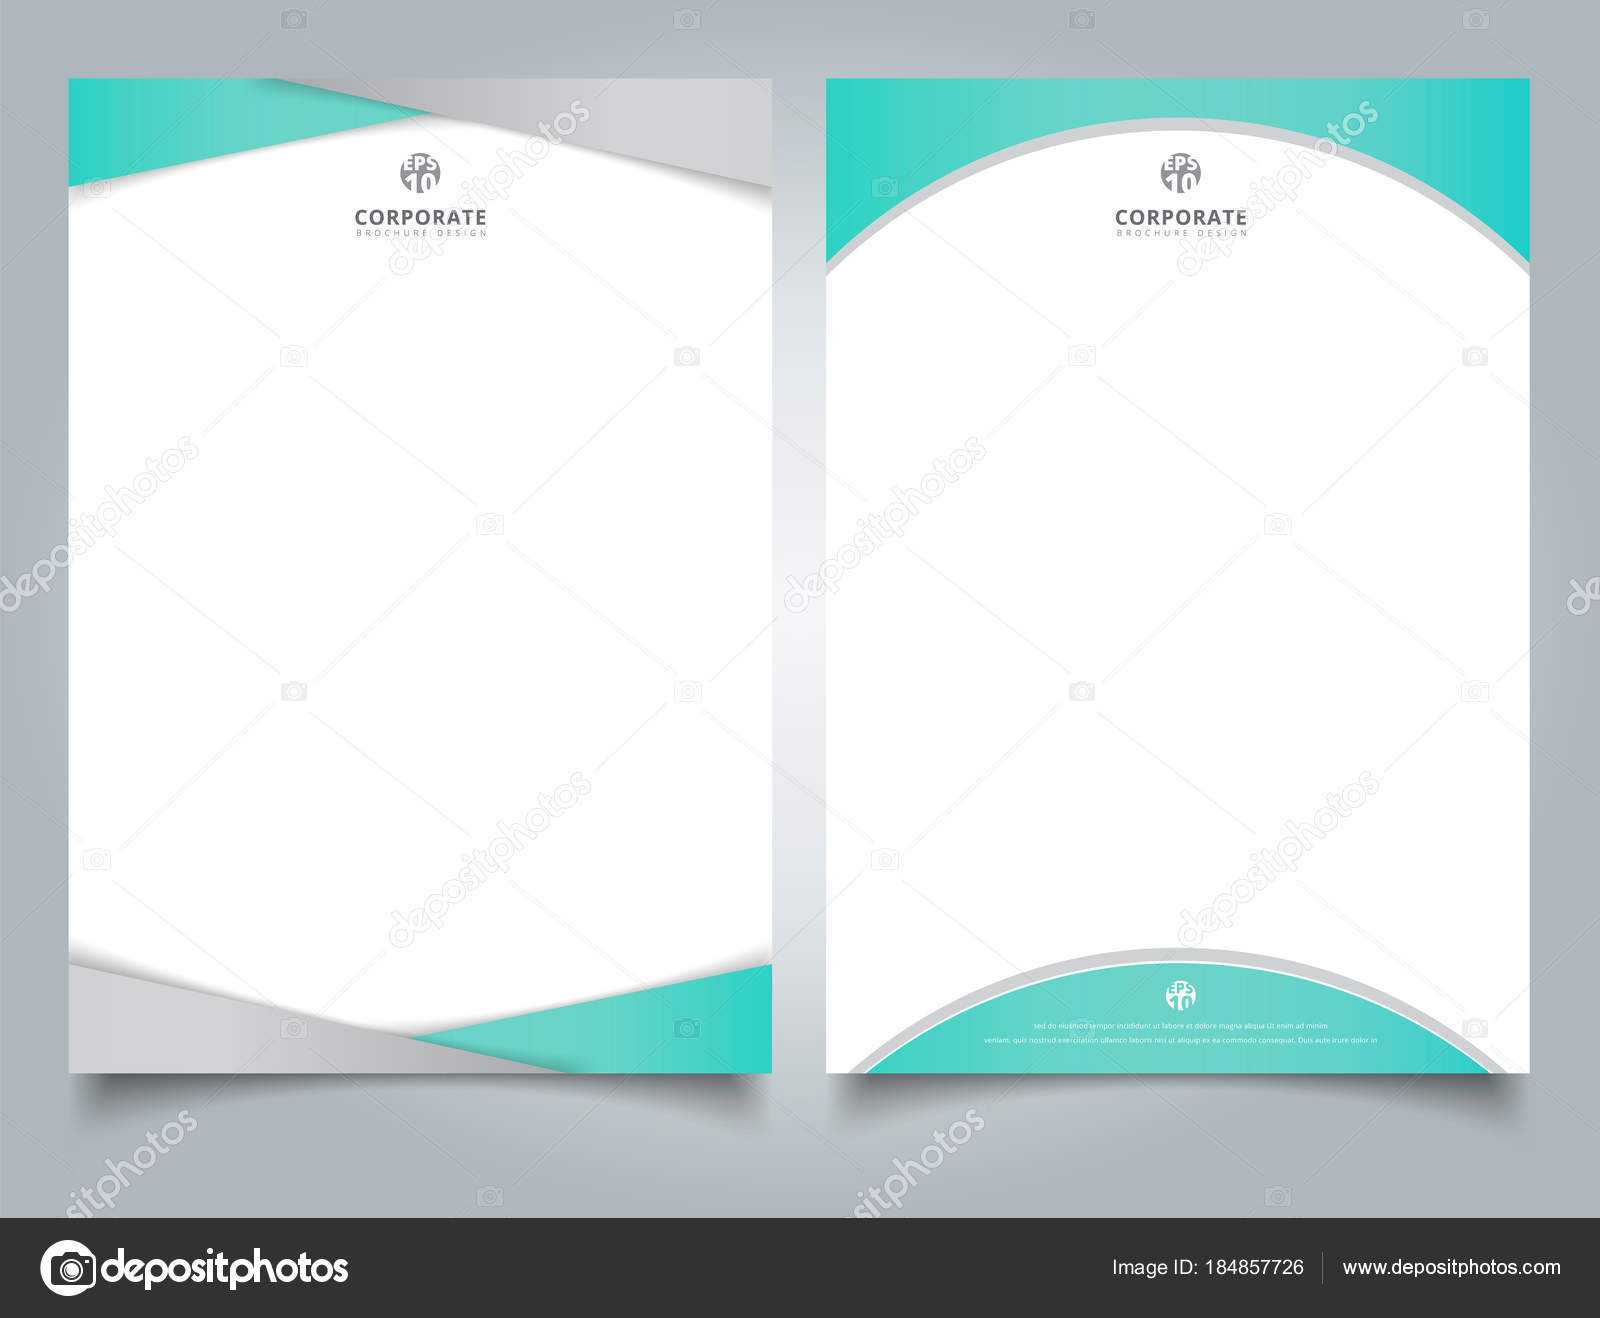 Abstract creative letterhead design template light blue color ge abstract creative letterhead design template light blue color ge stock vector spiritdancerdesigns Image collections